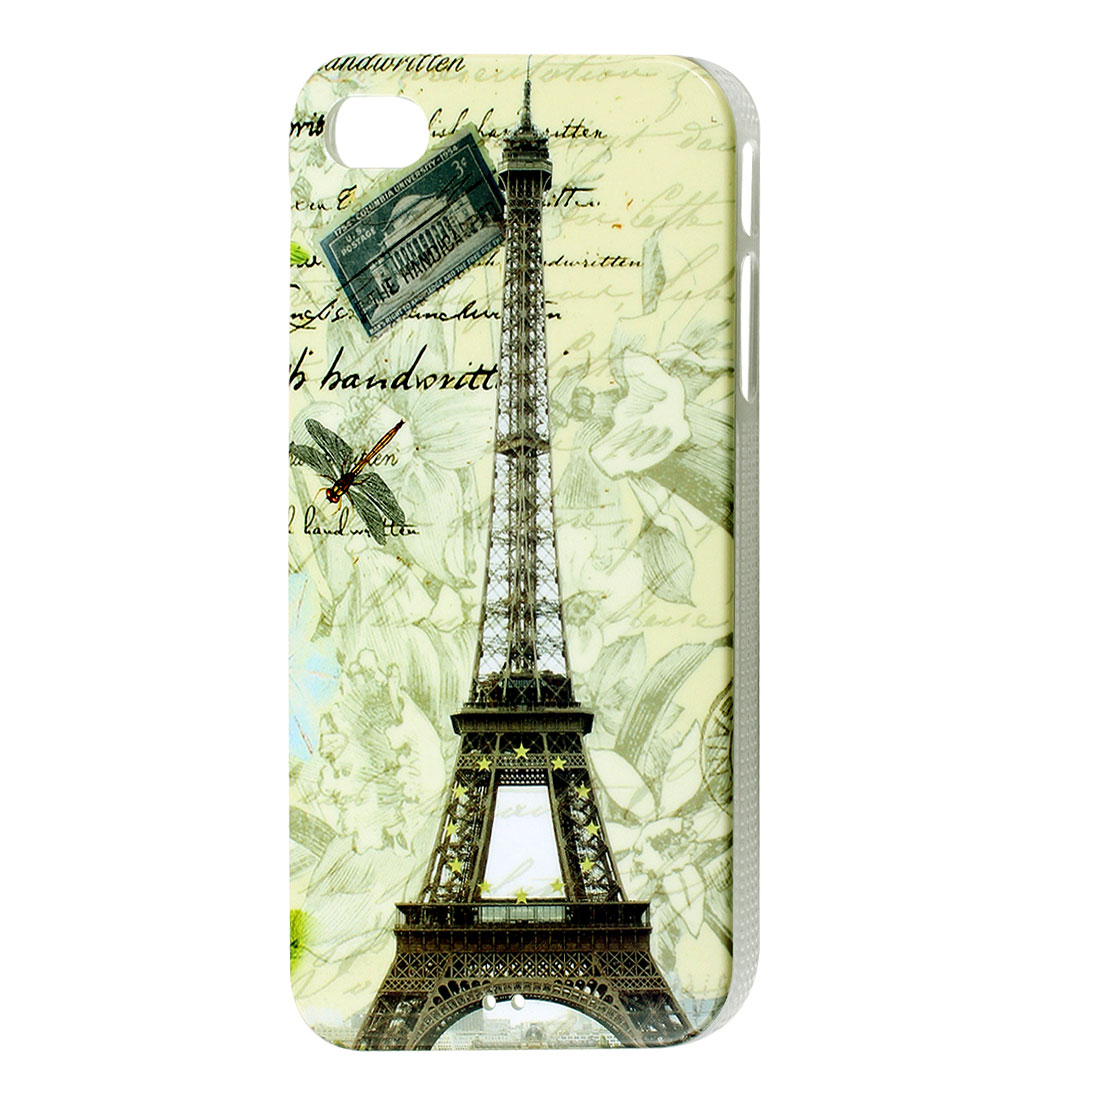 Paris Eiffel Tower Dragonfly Hard Back Case Cover for Apple iPhone 4 4G 4S 4GS